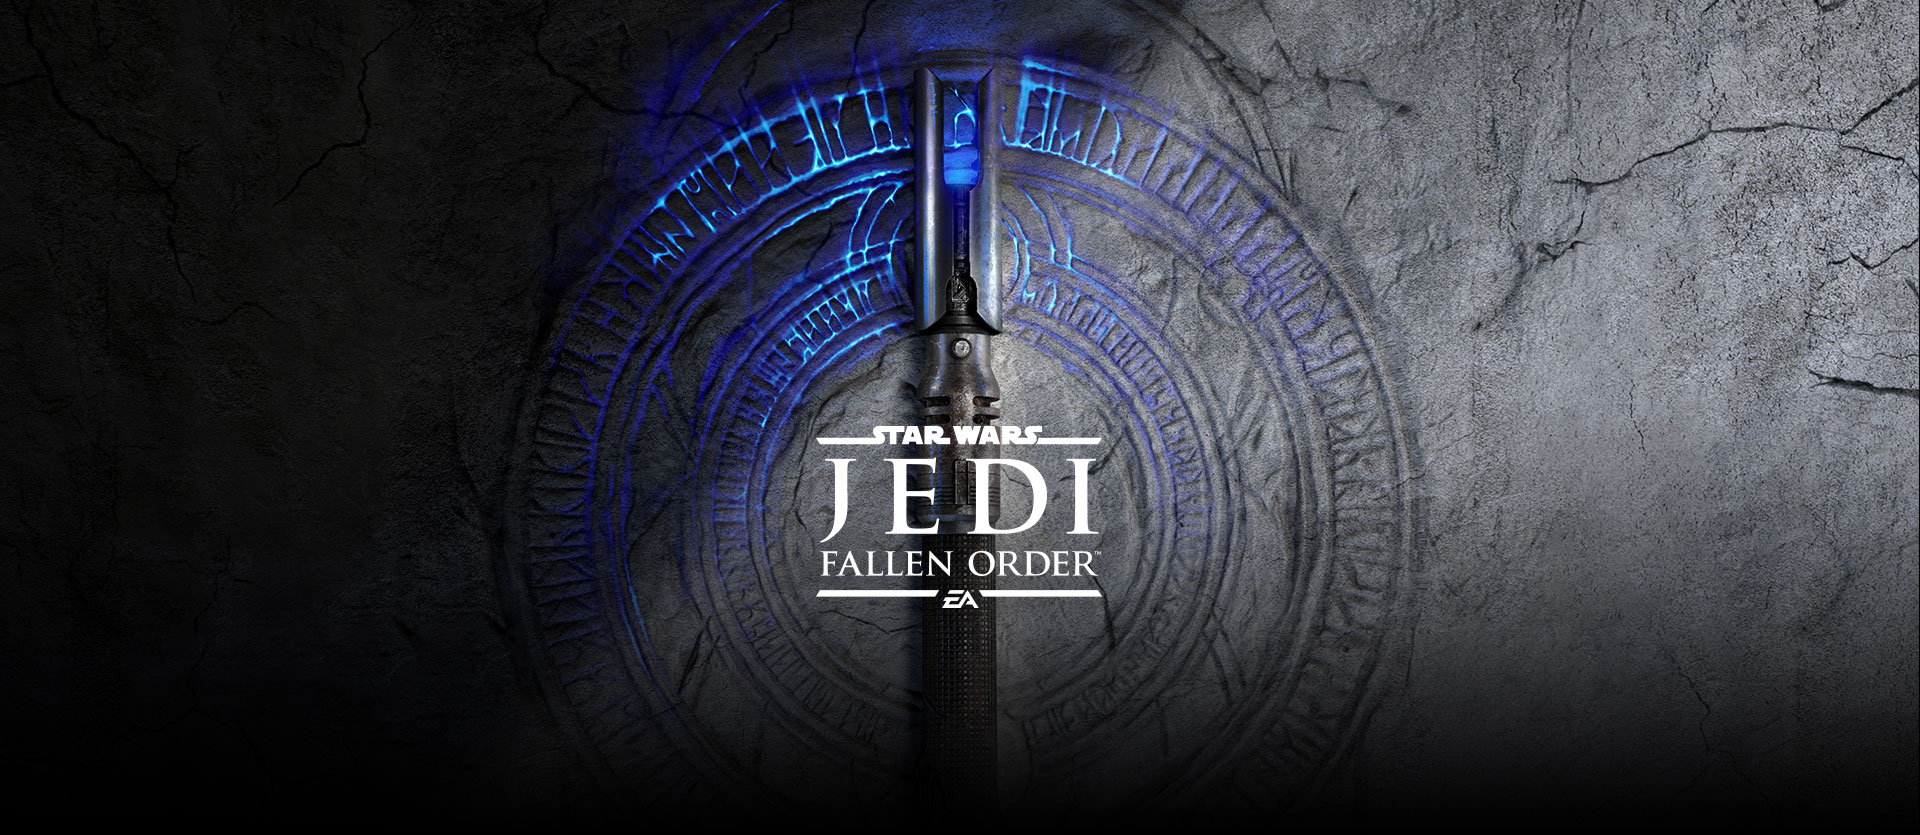 Star Wars Jedi: Fallen Order™, A broken lightsaber hilt on top of glowing symbols